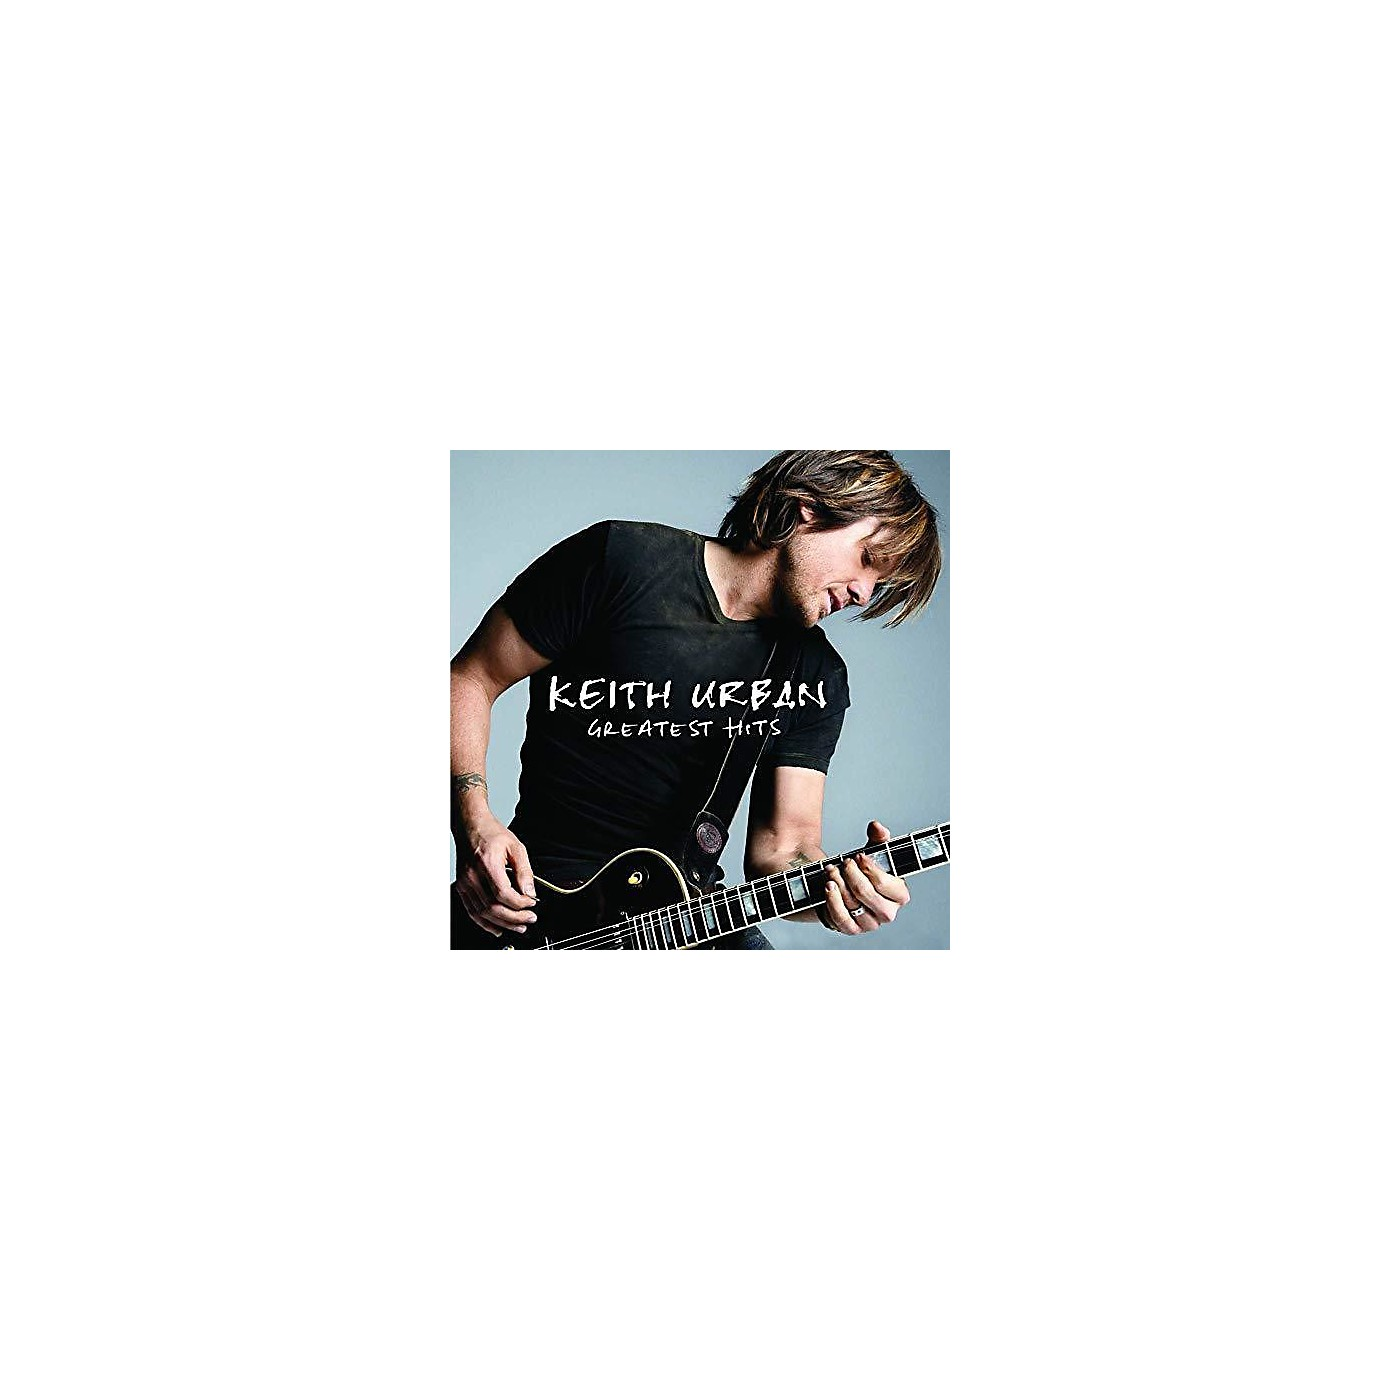 Alliance Keith Urban - Greatest Hits - 19 Kids thumbnail